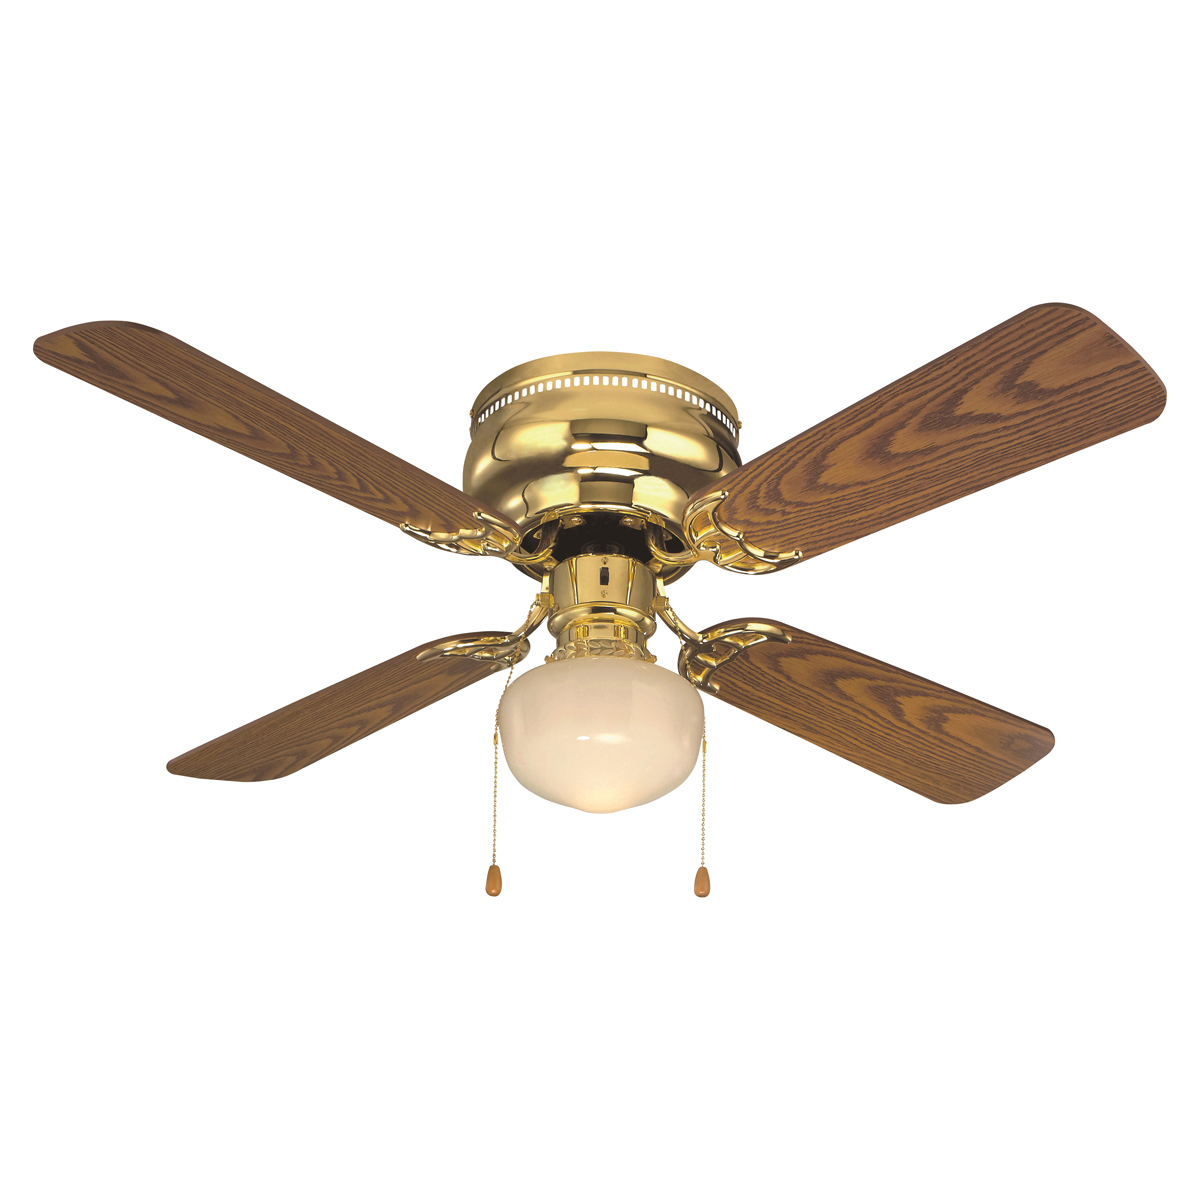 Picture of Boston Harbor CF-78125 Ceiling Fan, 4-Blade, 42 in Sweep